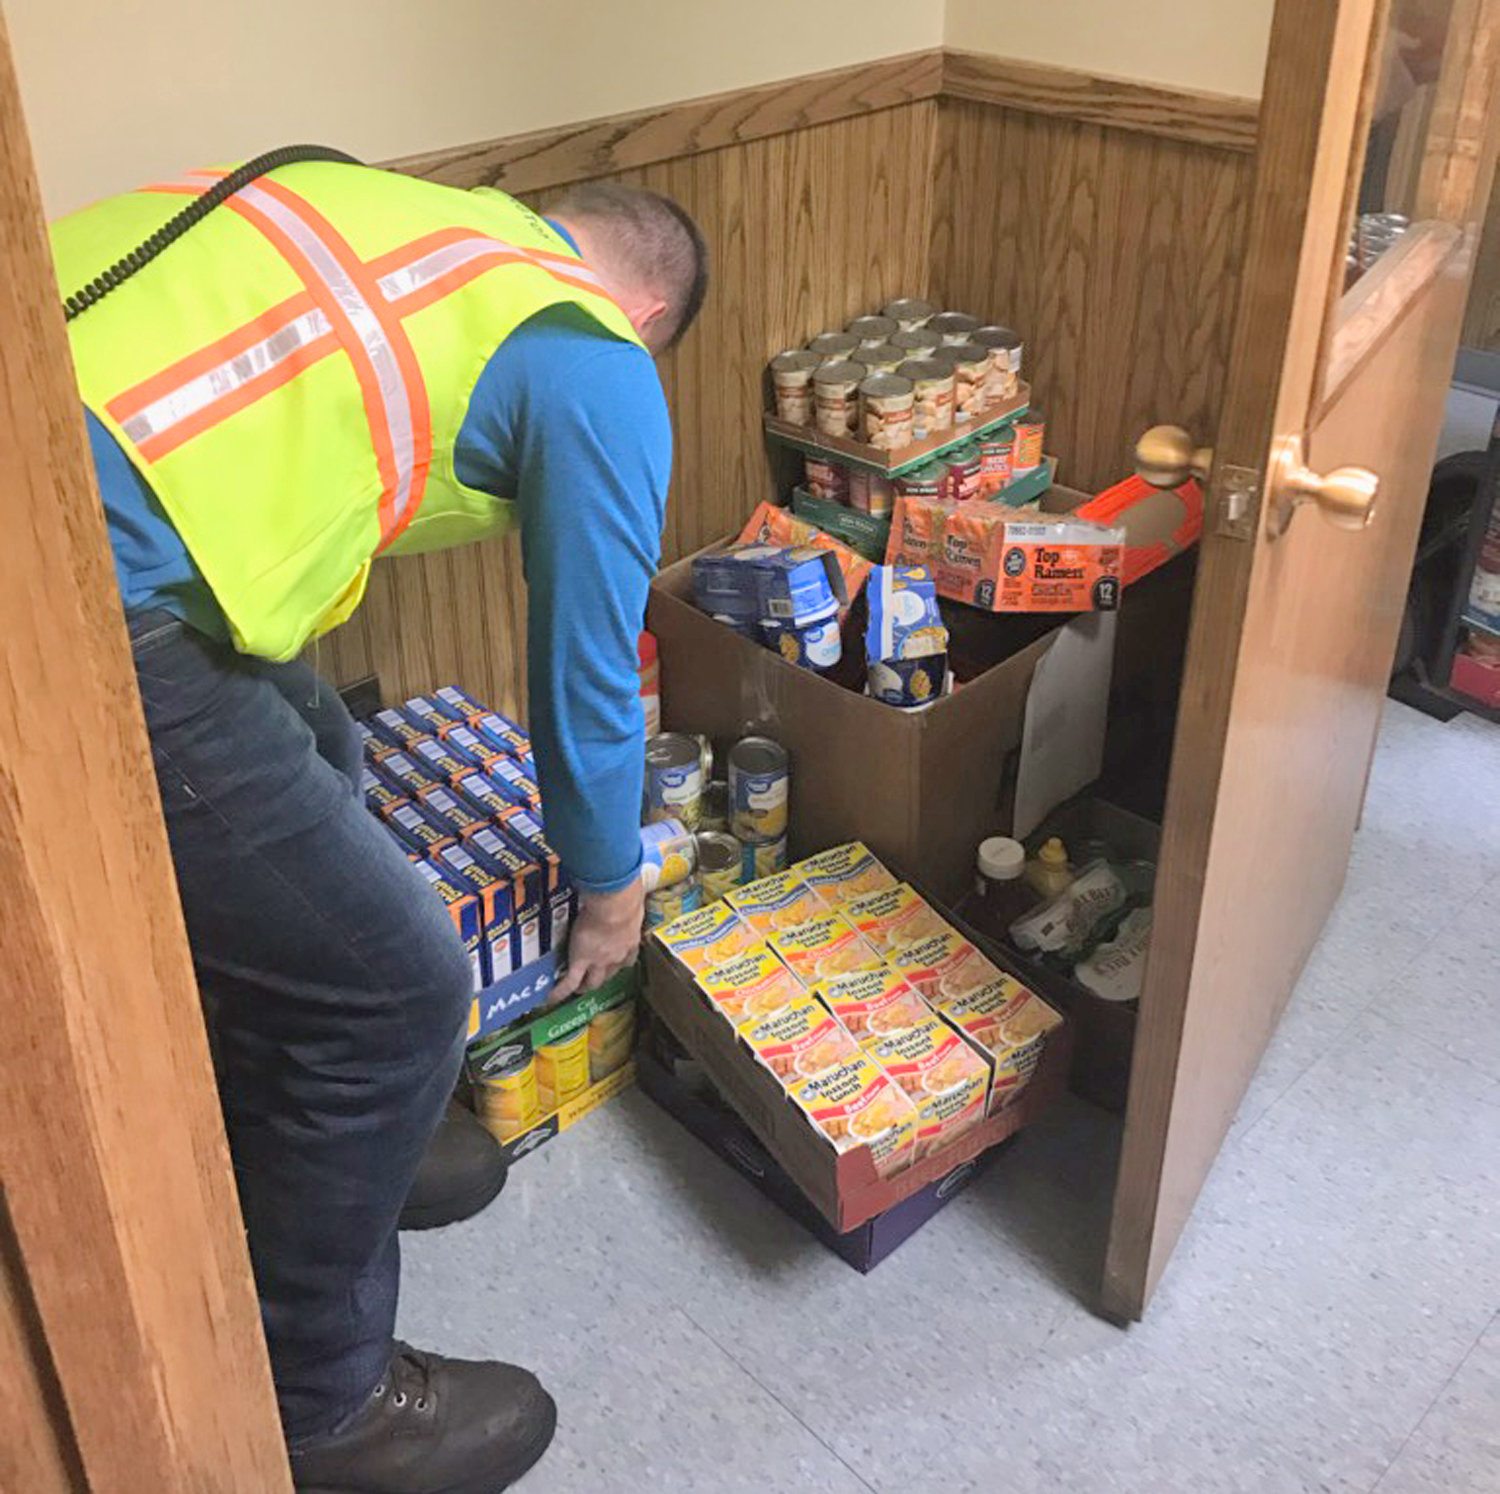 PLENTY TO EAT — Donated food items for the Feed Our Vets organization are gathered at Worthington Industries' Rome site, where employees participated in a drive.